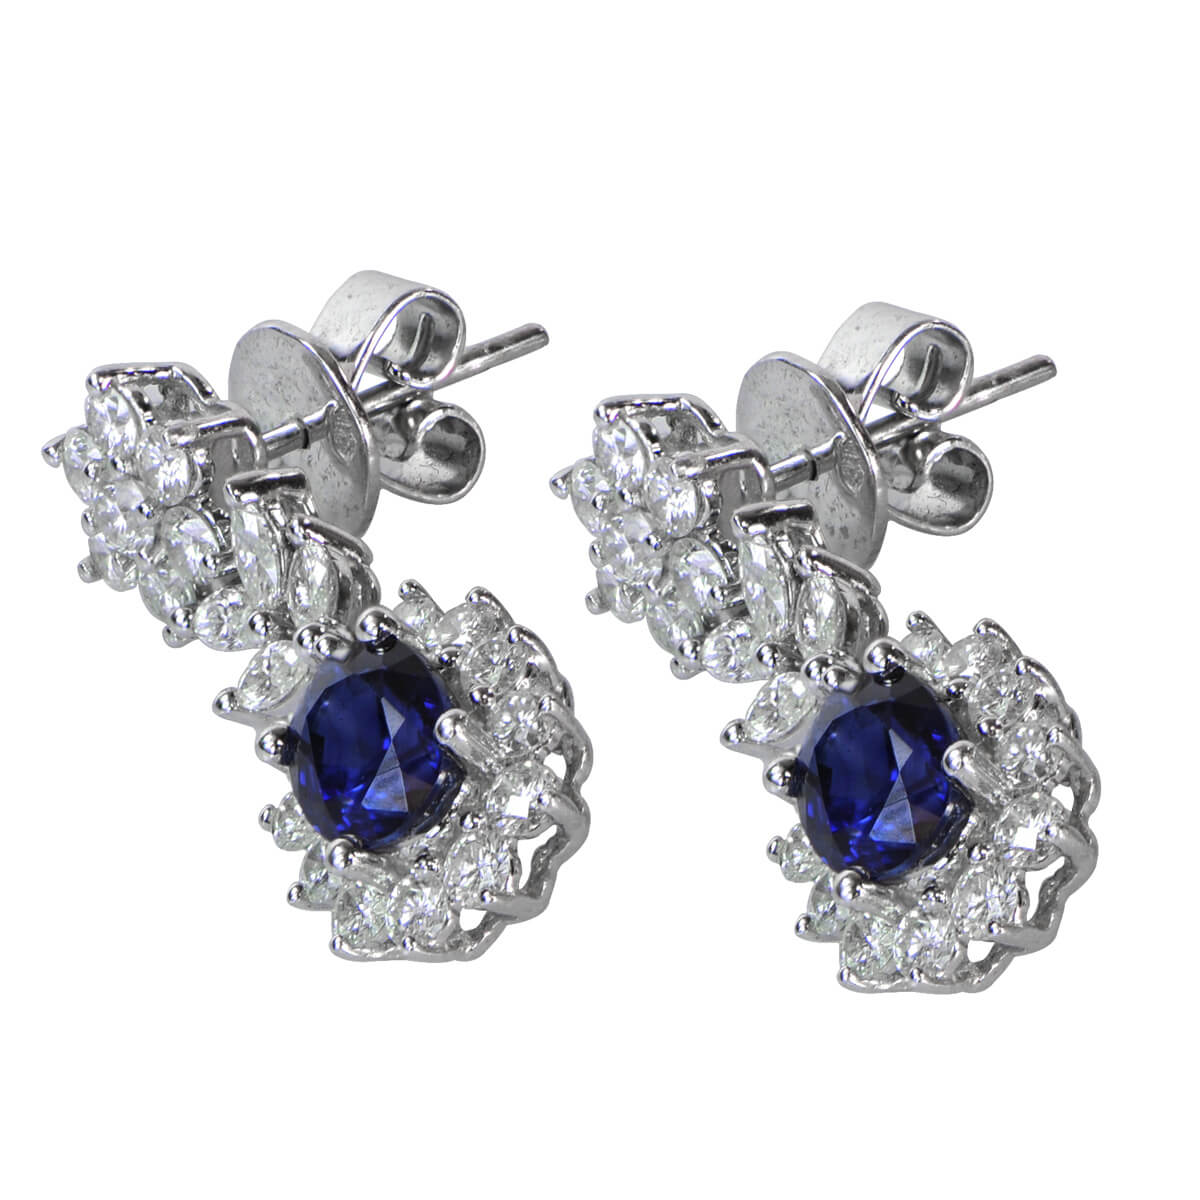 Vintage Style Diamond and Sapphire Earrings